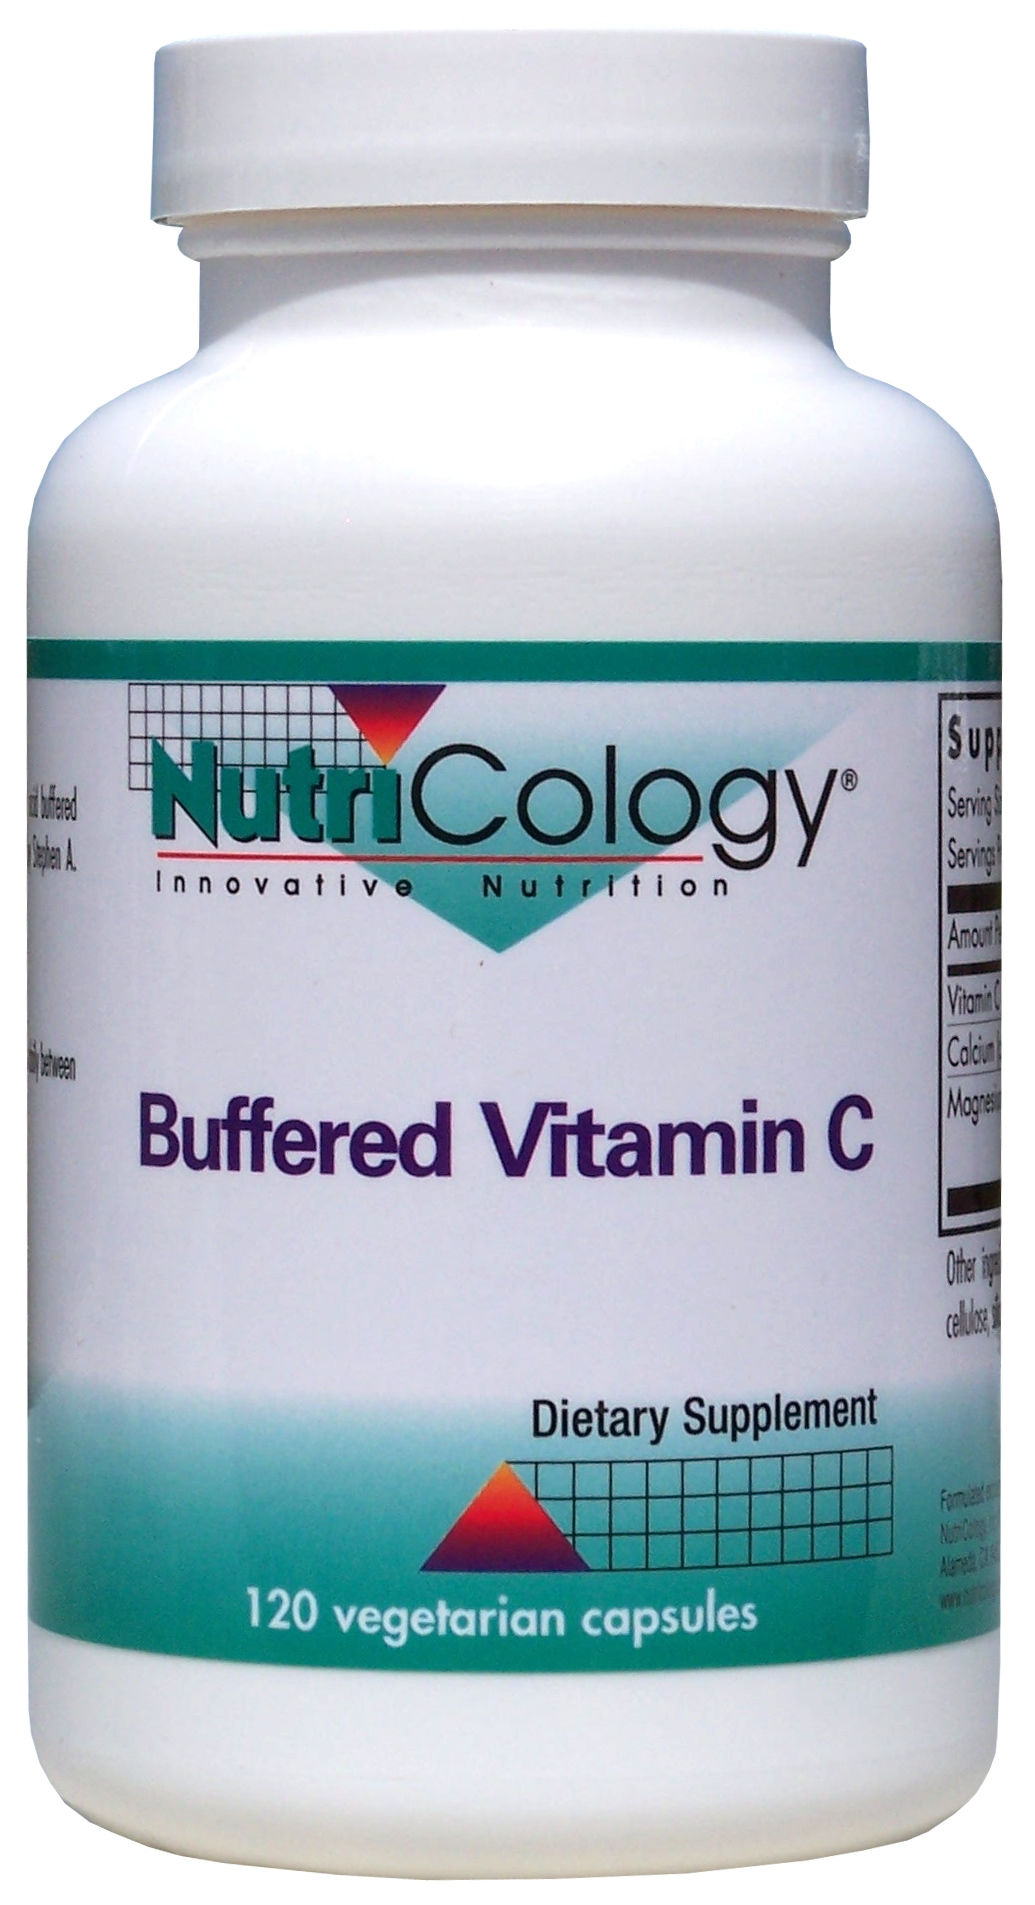 Buffered Vitamin C 120 Vegetarian Caps by Nutricology